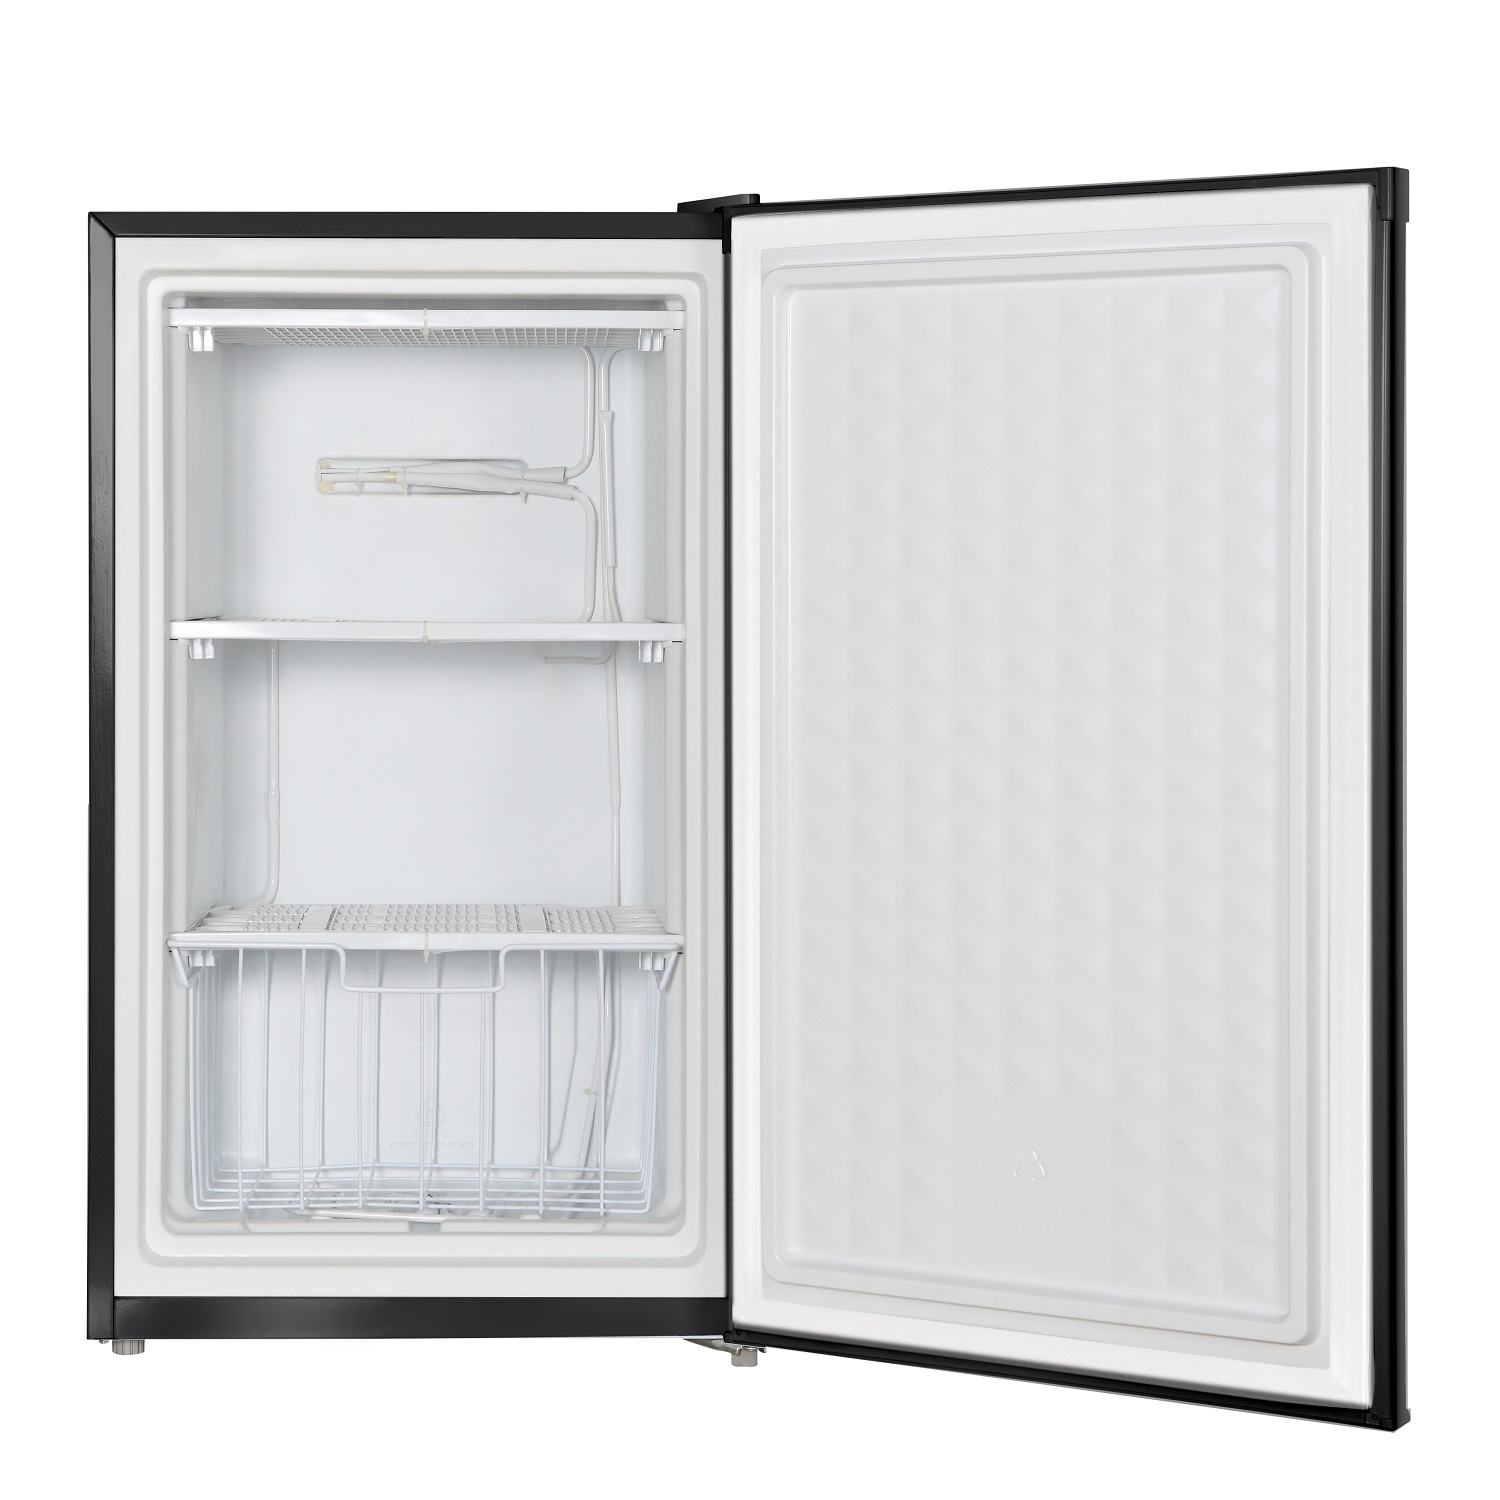 Small Stand Up Freezer Small Home